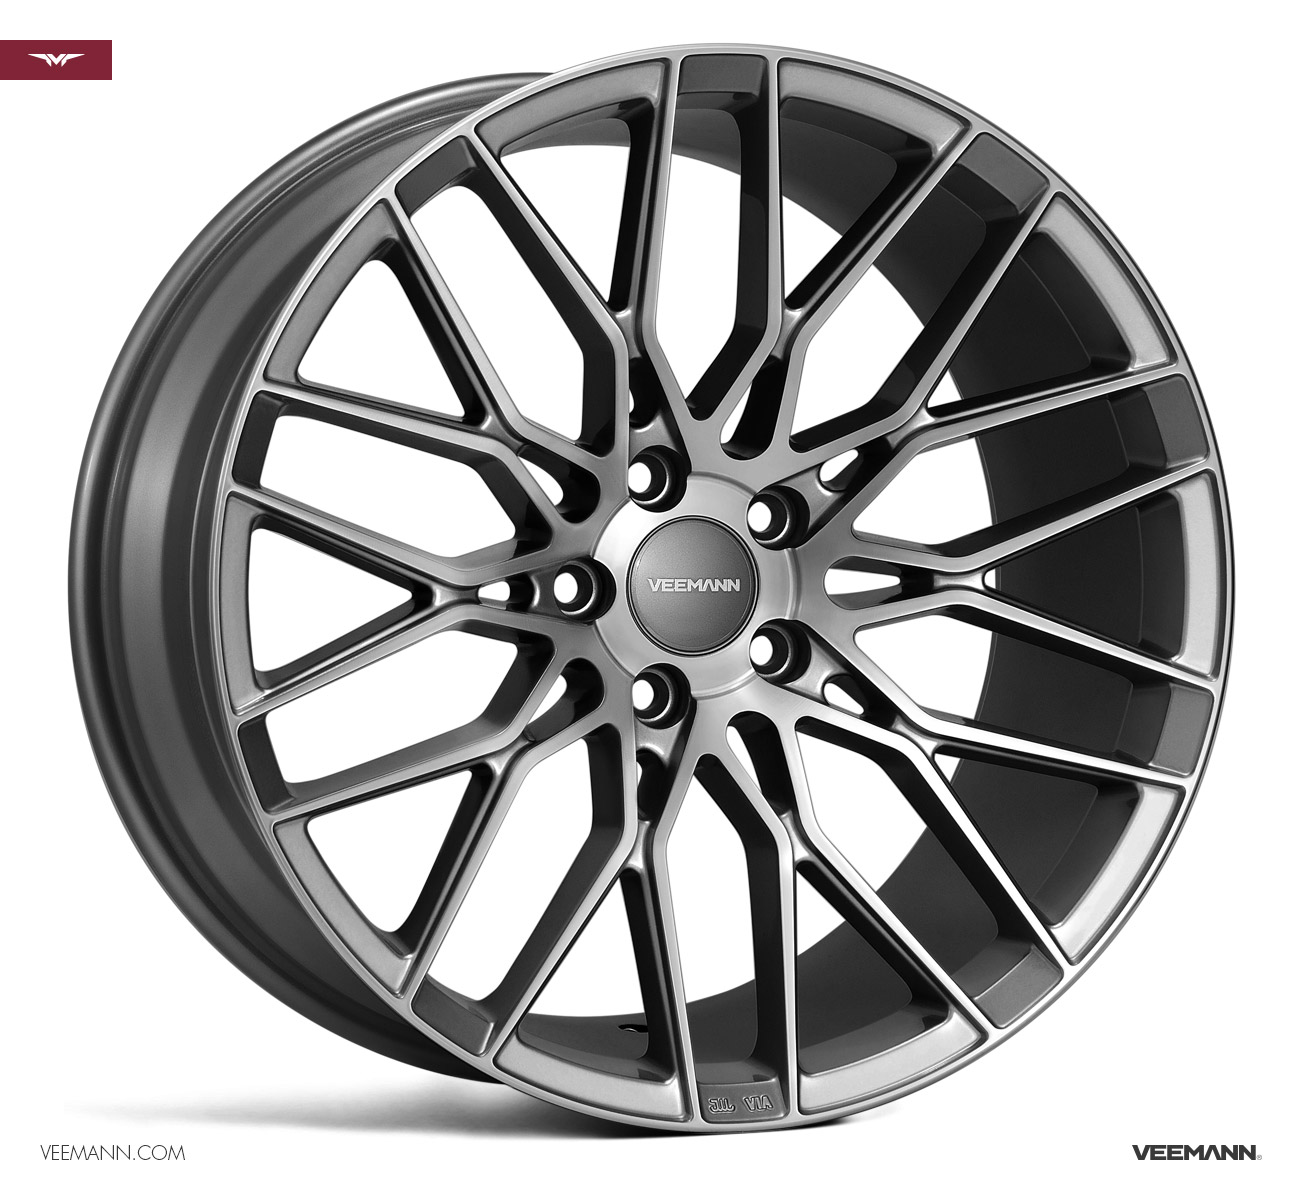 "NEW 19"" VEEMANN V-FS34 ALLOY WHEELS IN GLOSS GRAPHITE WITH WIDER 9.5"" REARS"